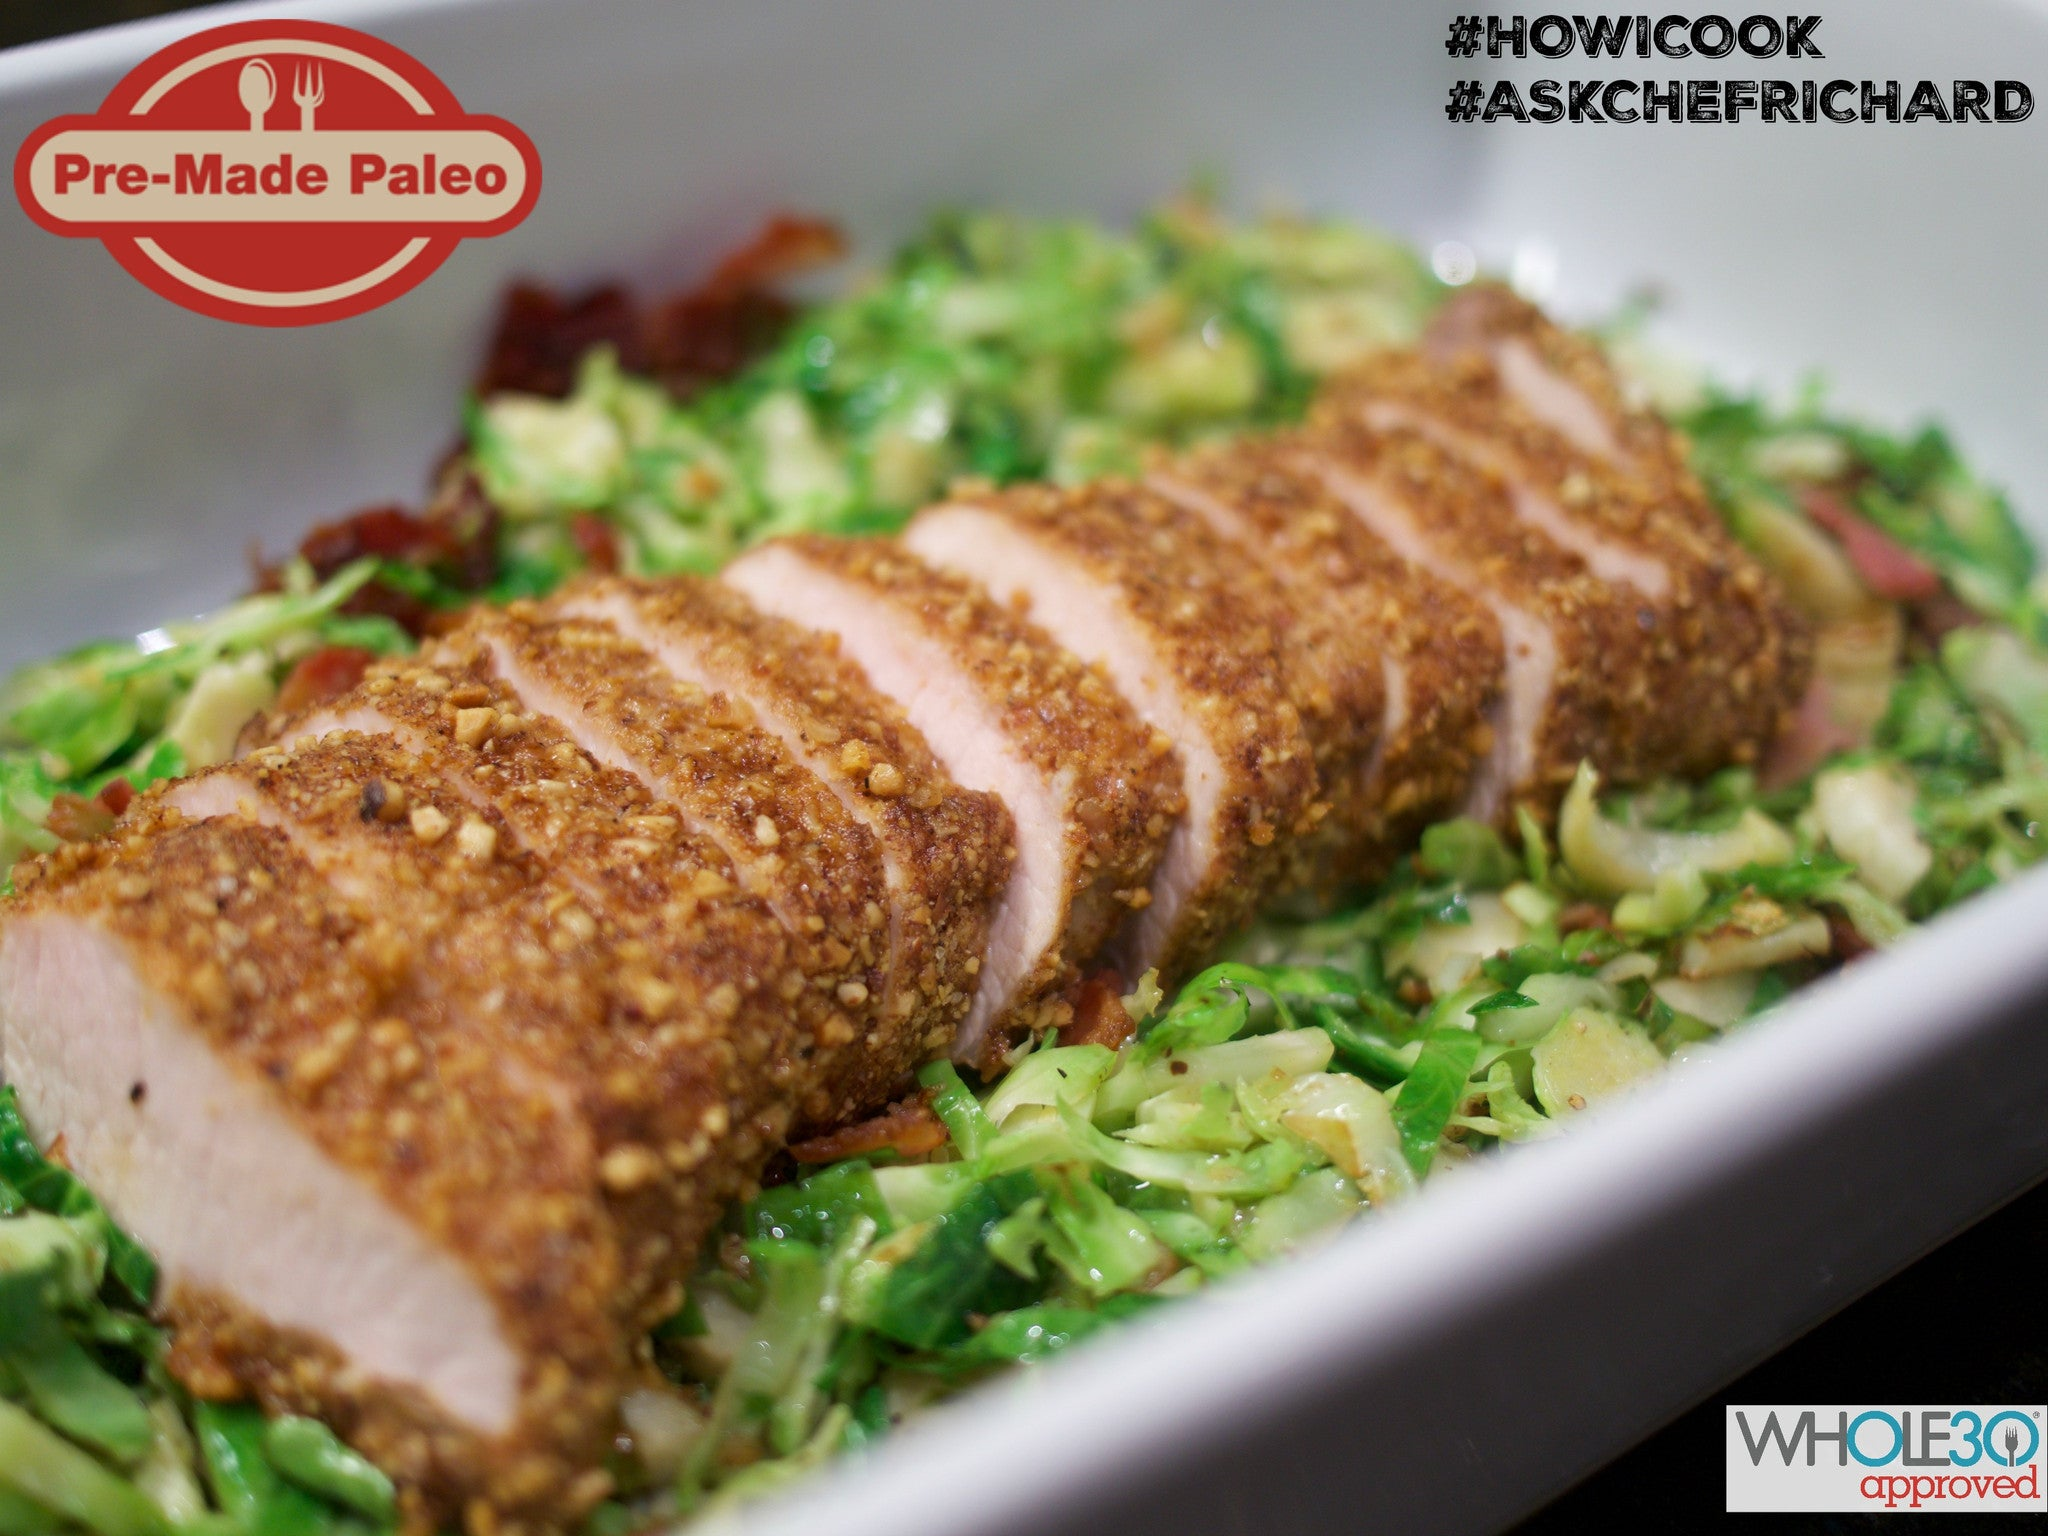 #HOWICOOK Recipe - Walnut Crusted Pork Loin (Inspired by Whole30 Book p. 252)